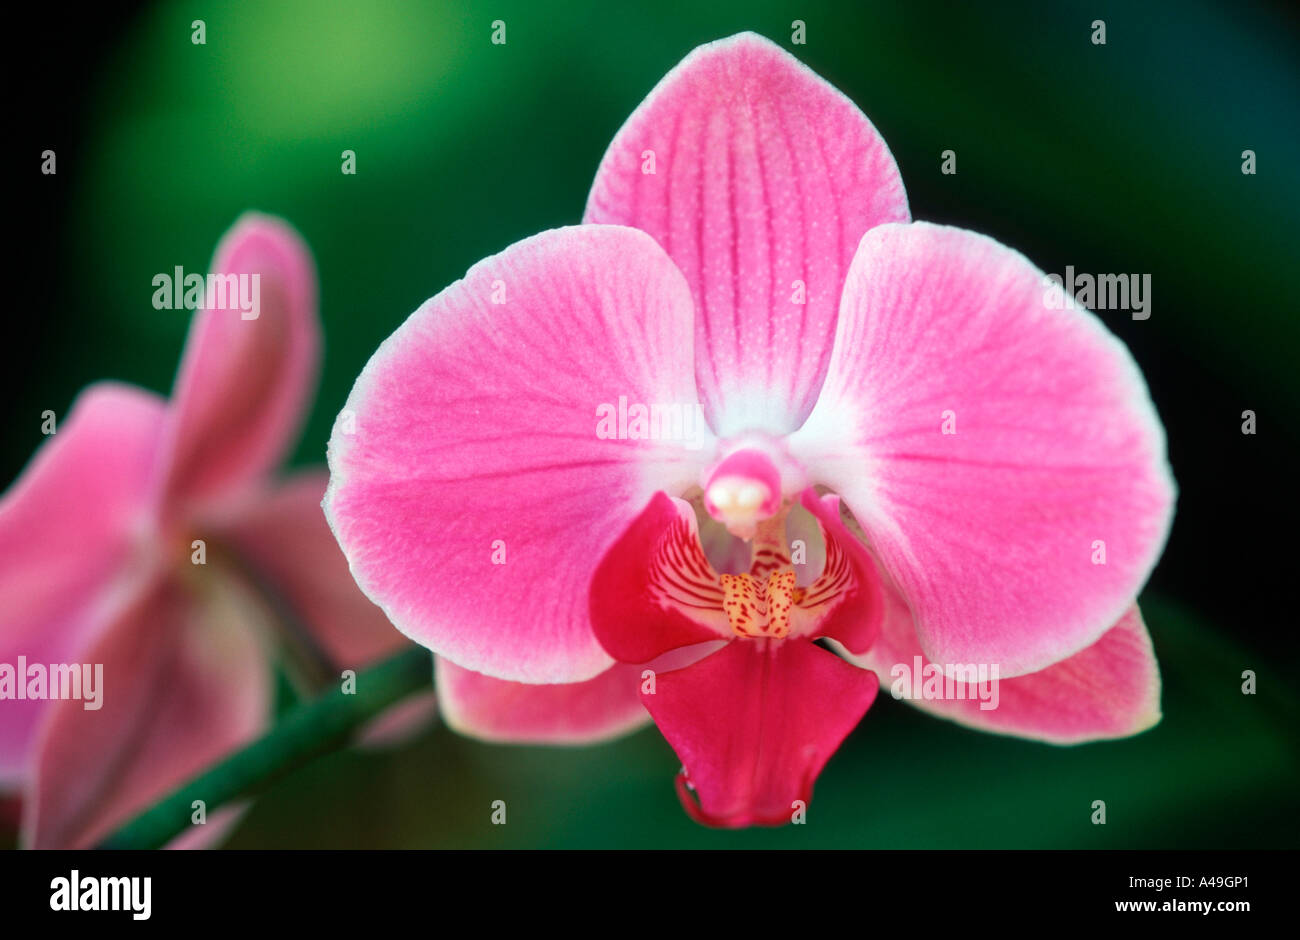 Orchid / Orchidee - Stock Image